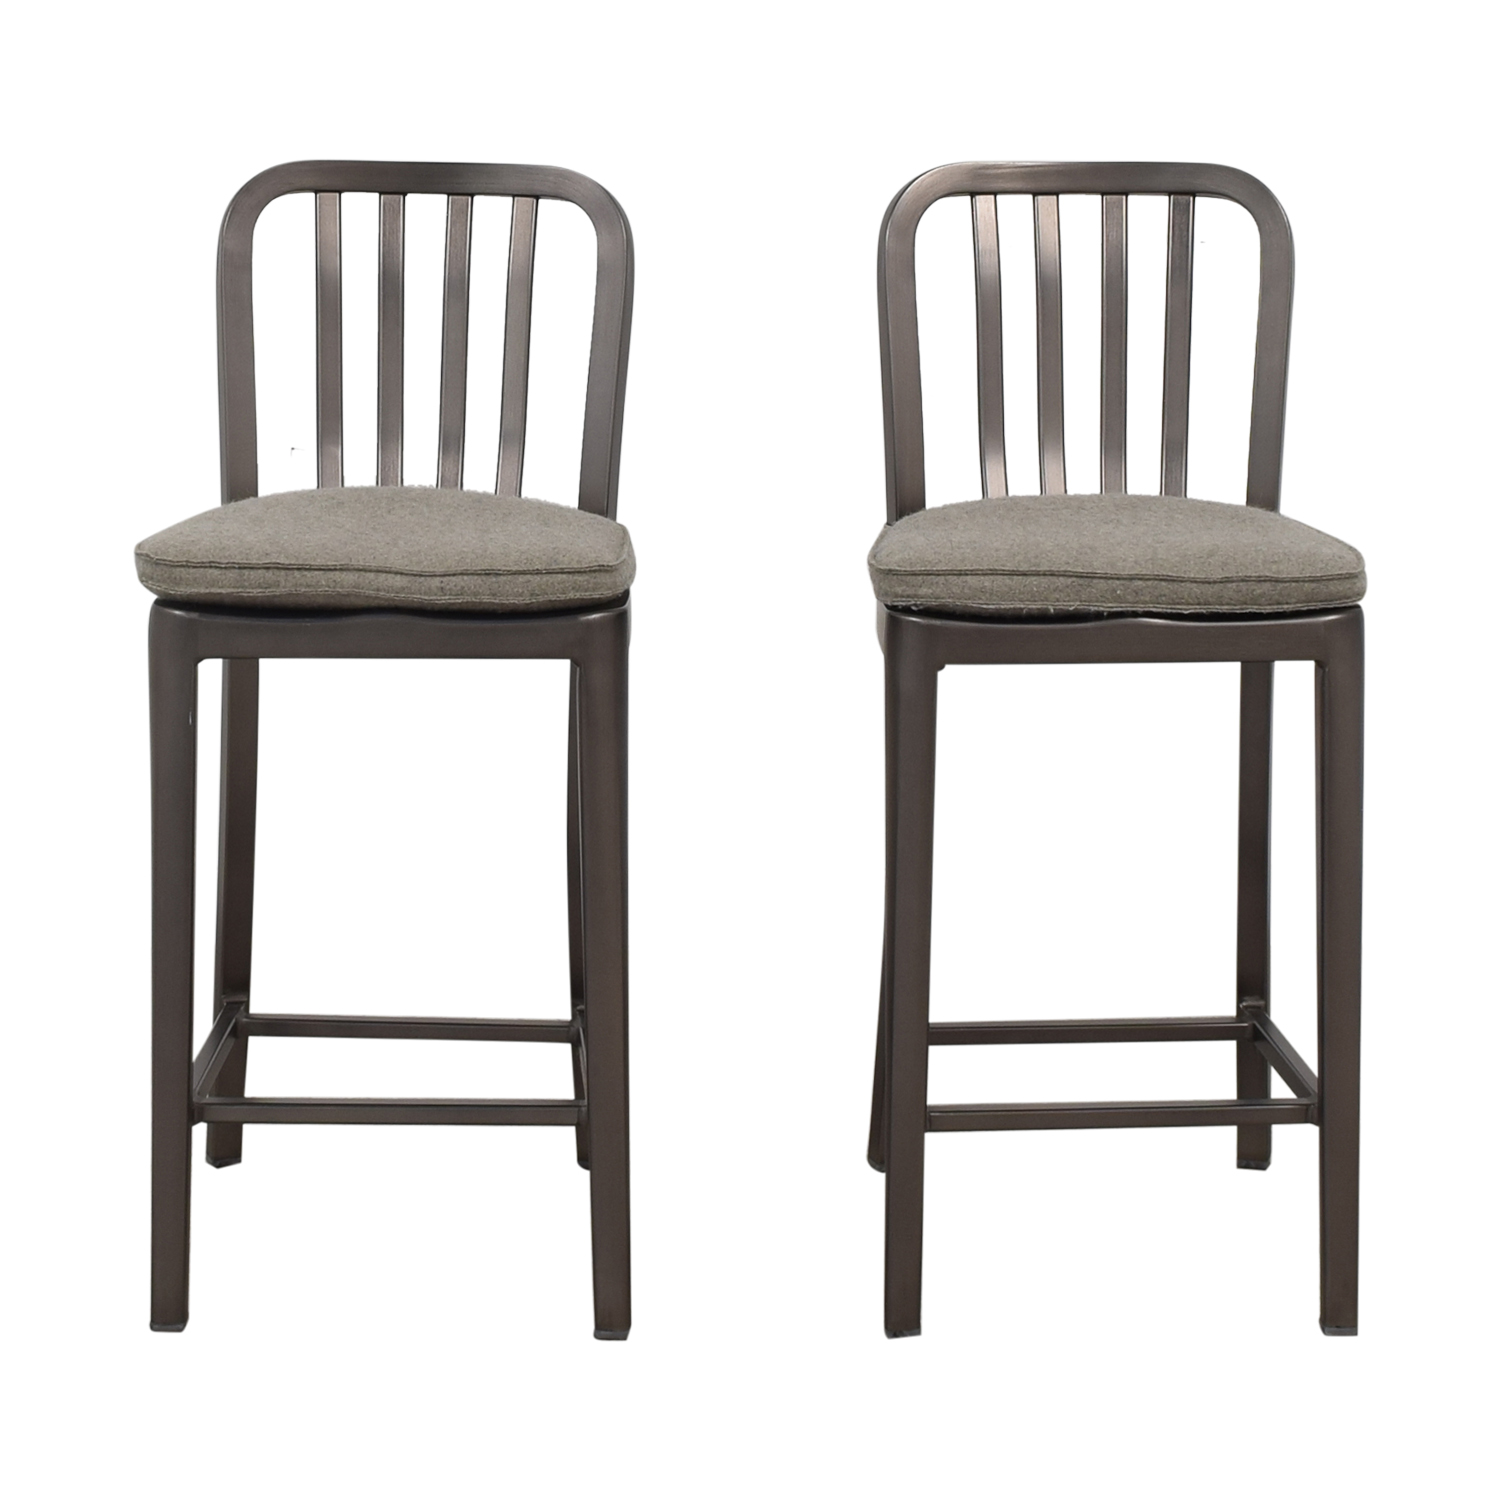 Crate & Barrel Crate & Barrel Delta Counter Stools with Cushion Chairs